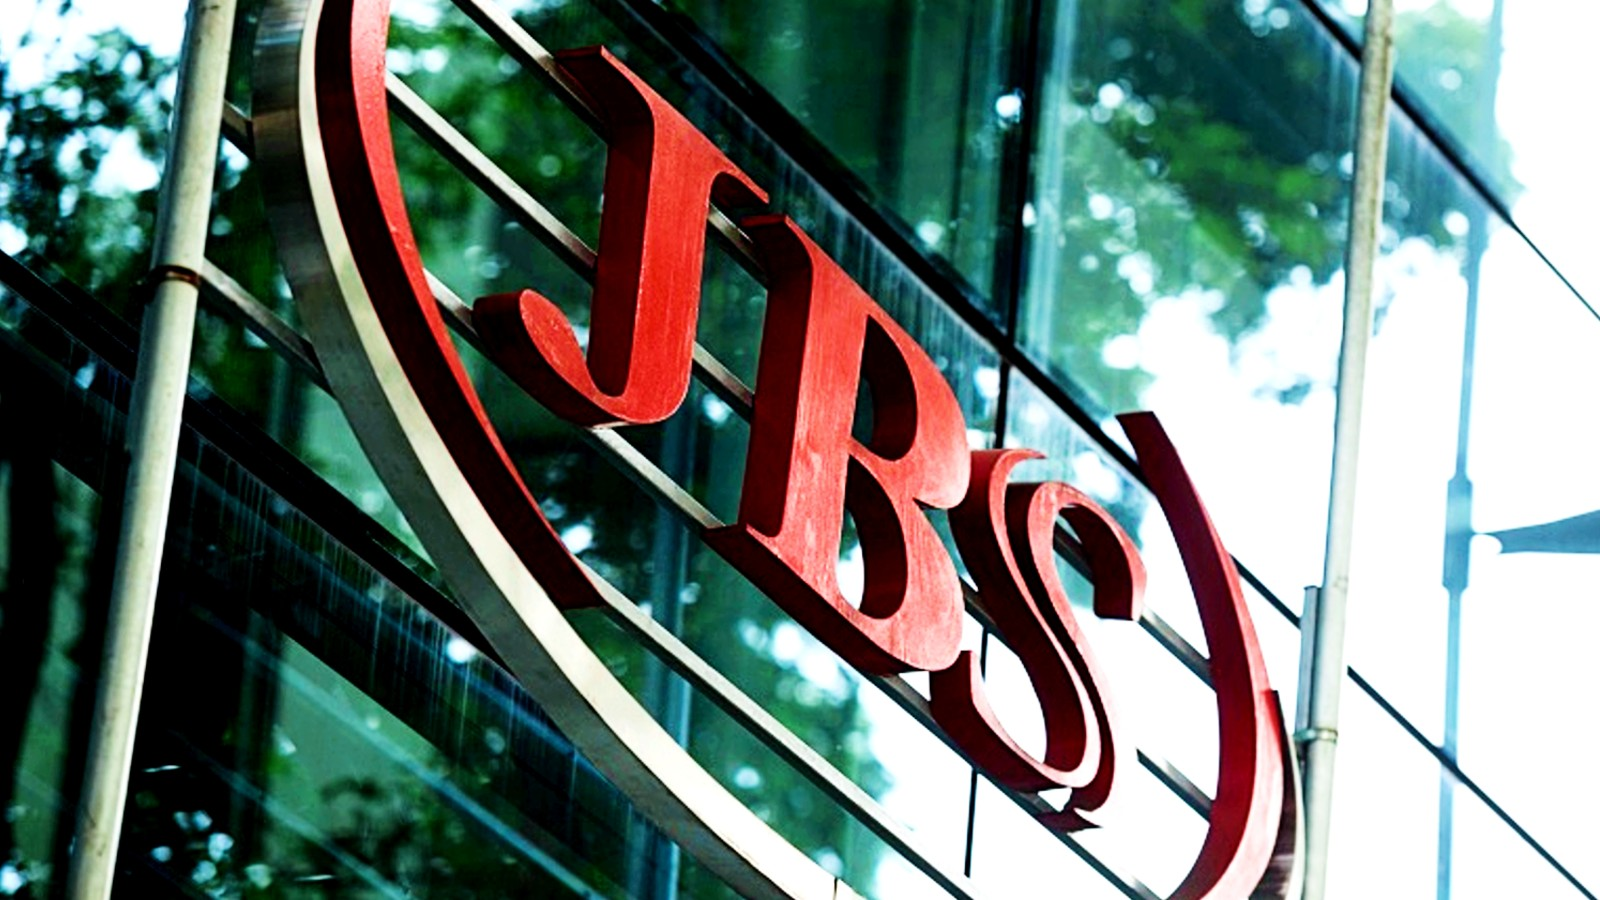 REvil cybergang behind the JBS ransomware attack